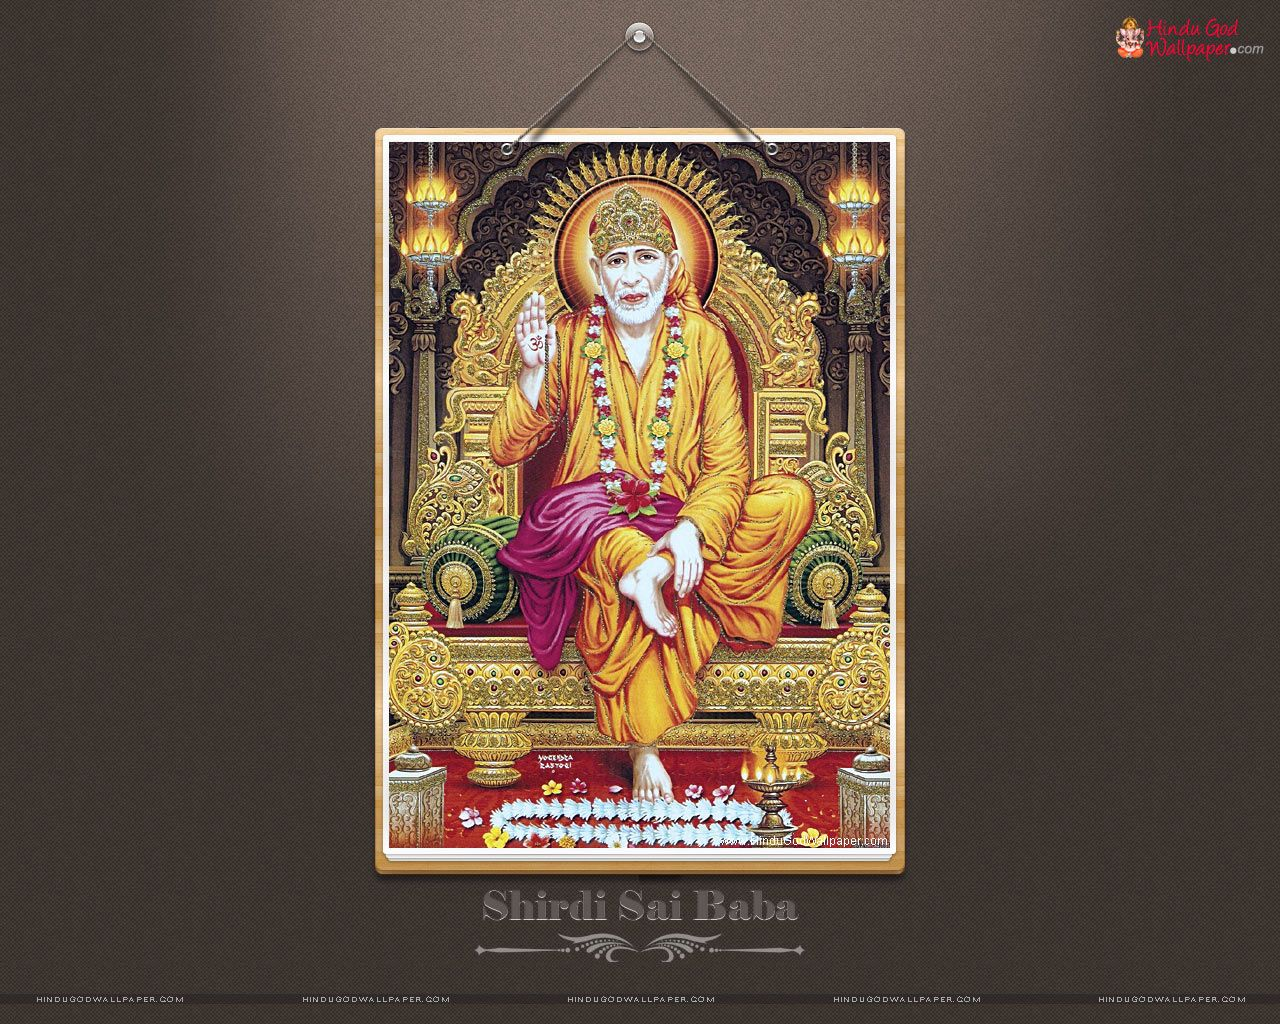 Shirdi Sai Baba Hd Wallpapers Full Size Download Sai Baba Hd